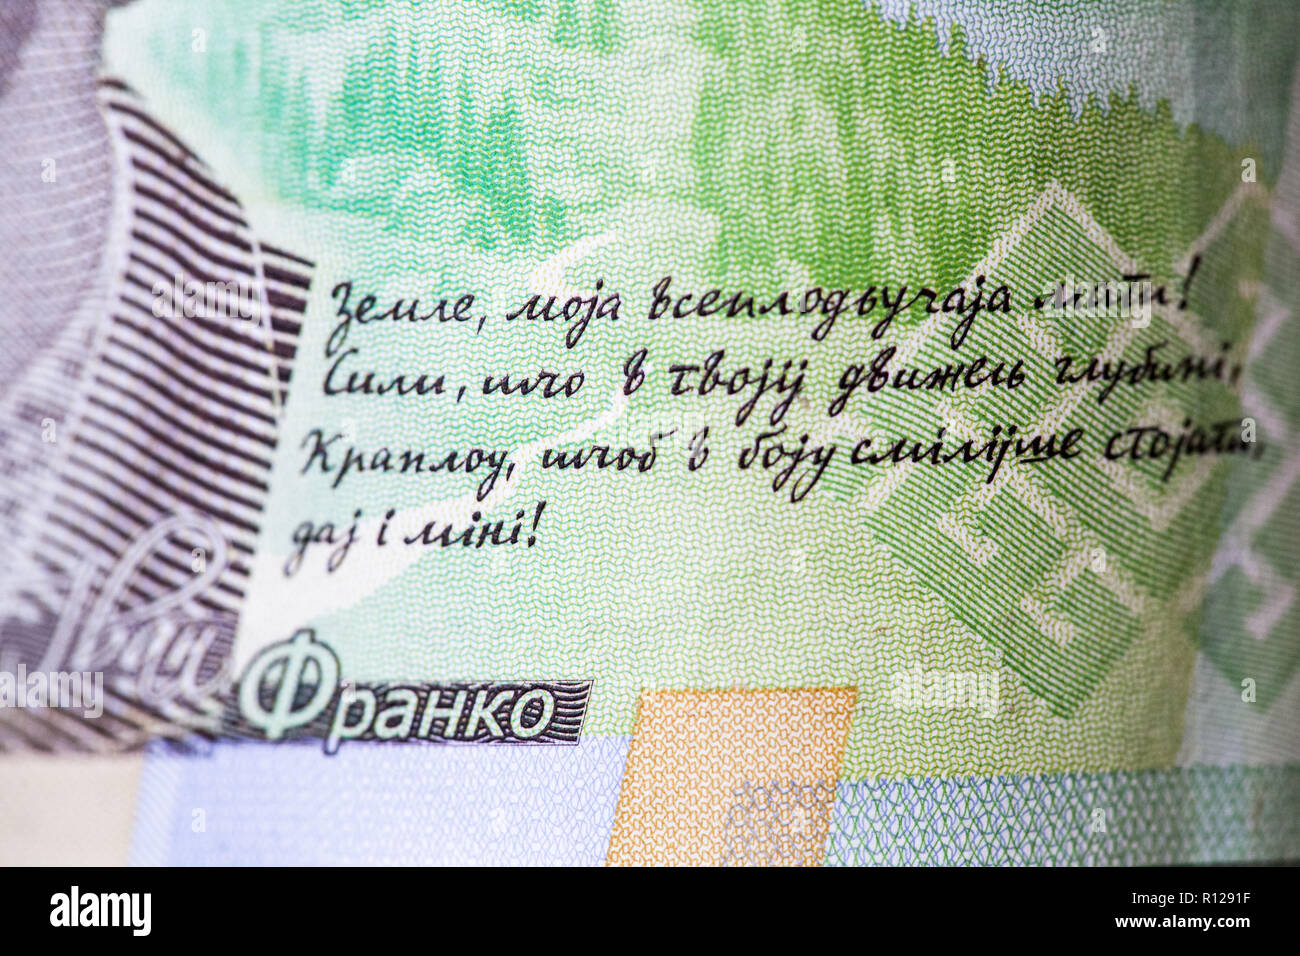 New banknote denomination of 20 UAH. Ukrainian money close up. Fragment of banknotes - Stock Image